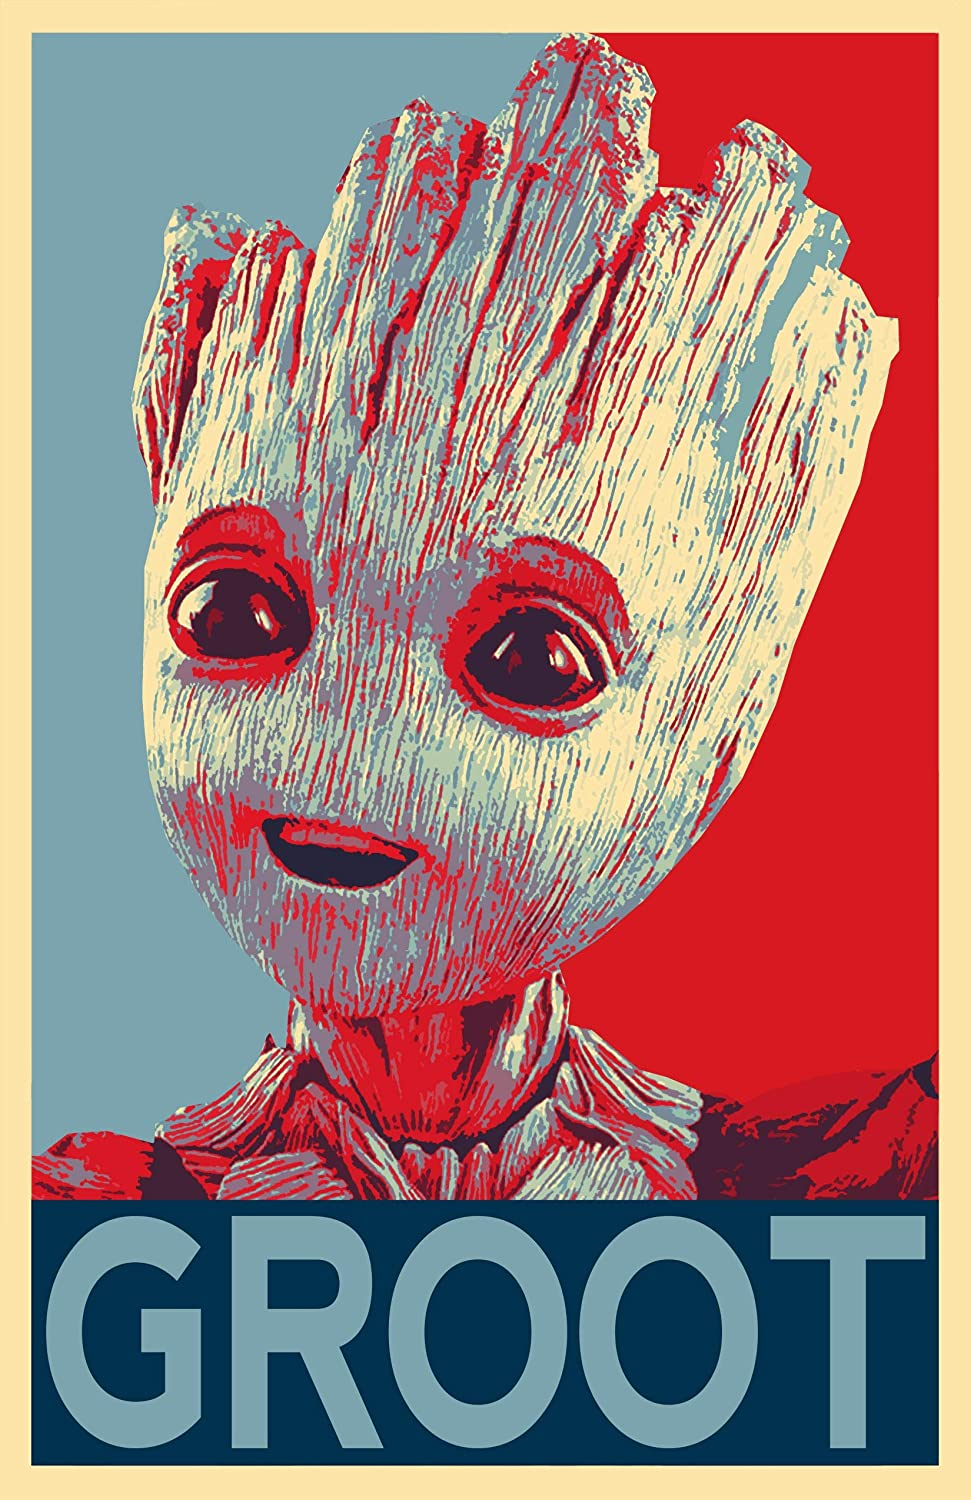 ada26f4c0 Amazon.com: NLopezArt Groot Political Poster- Guardians of The Galaxy -  Marvel Avengers Superhero Pop Art Poster Print (11x17 inches) (11x17):  Posters & ...